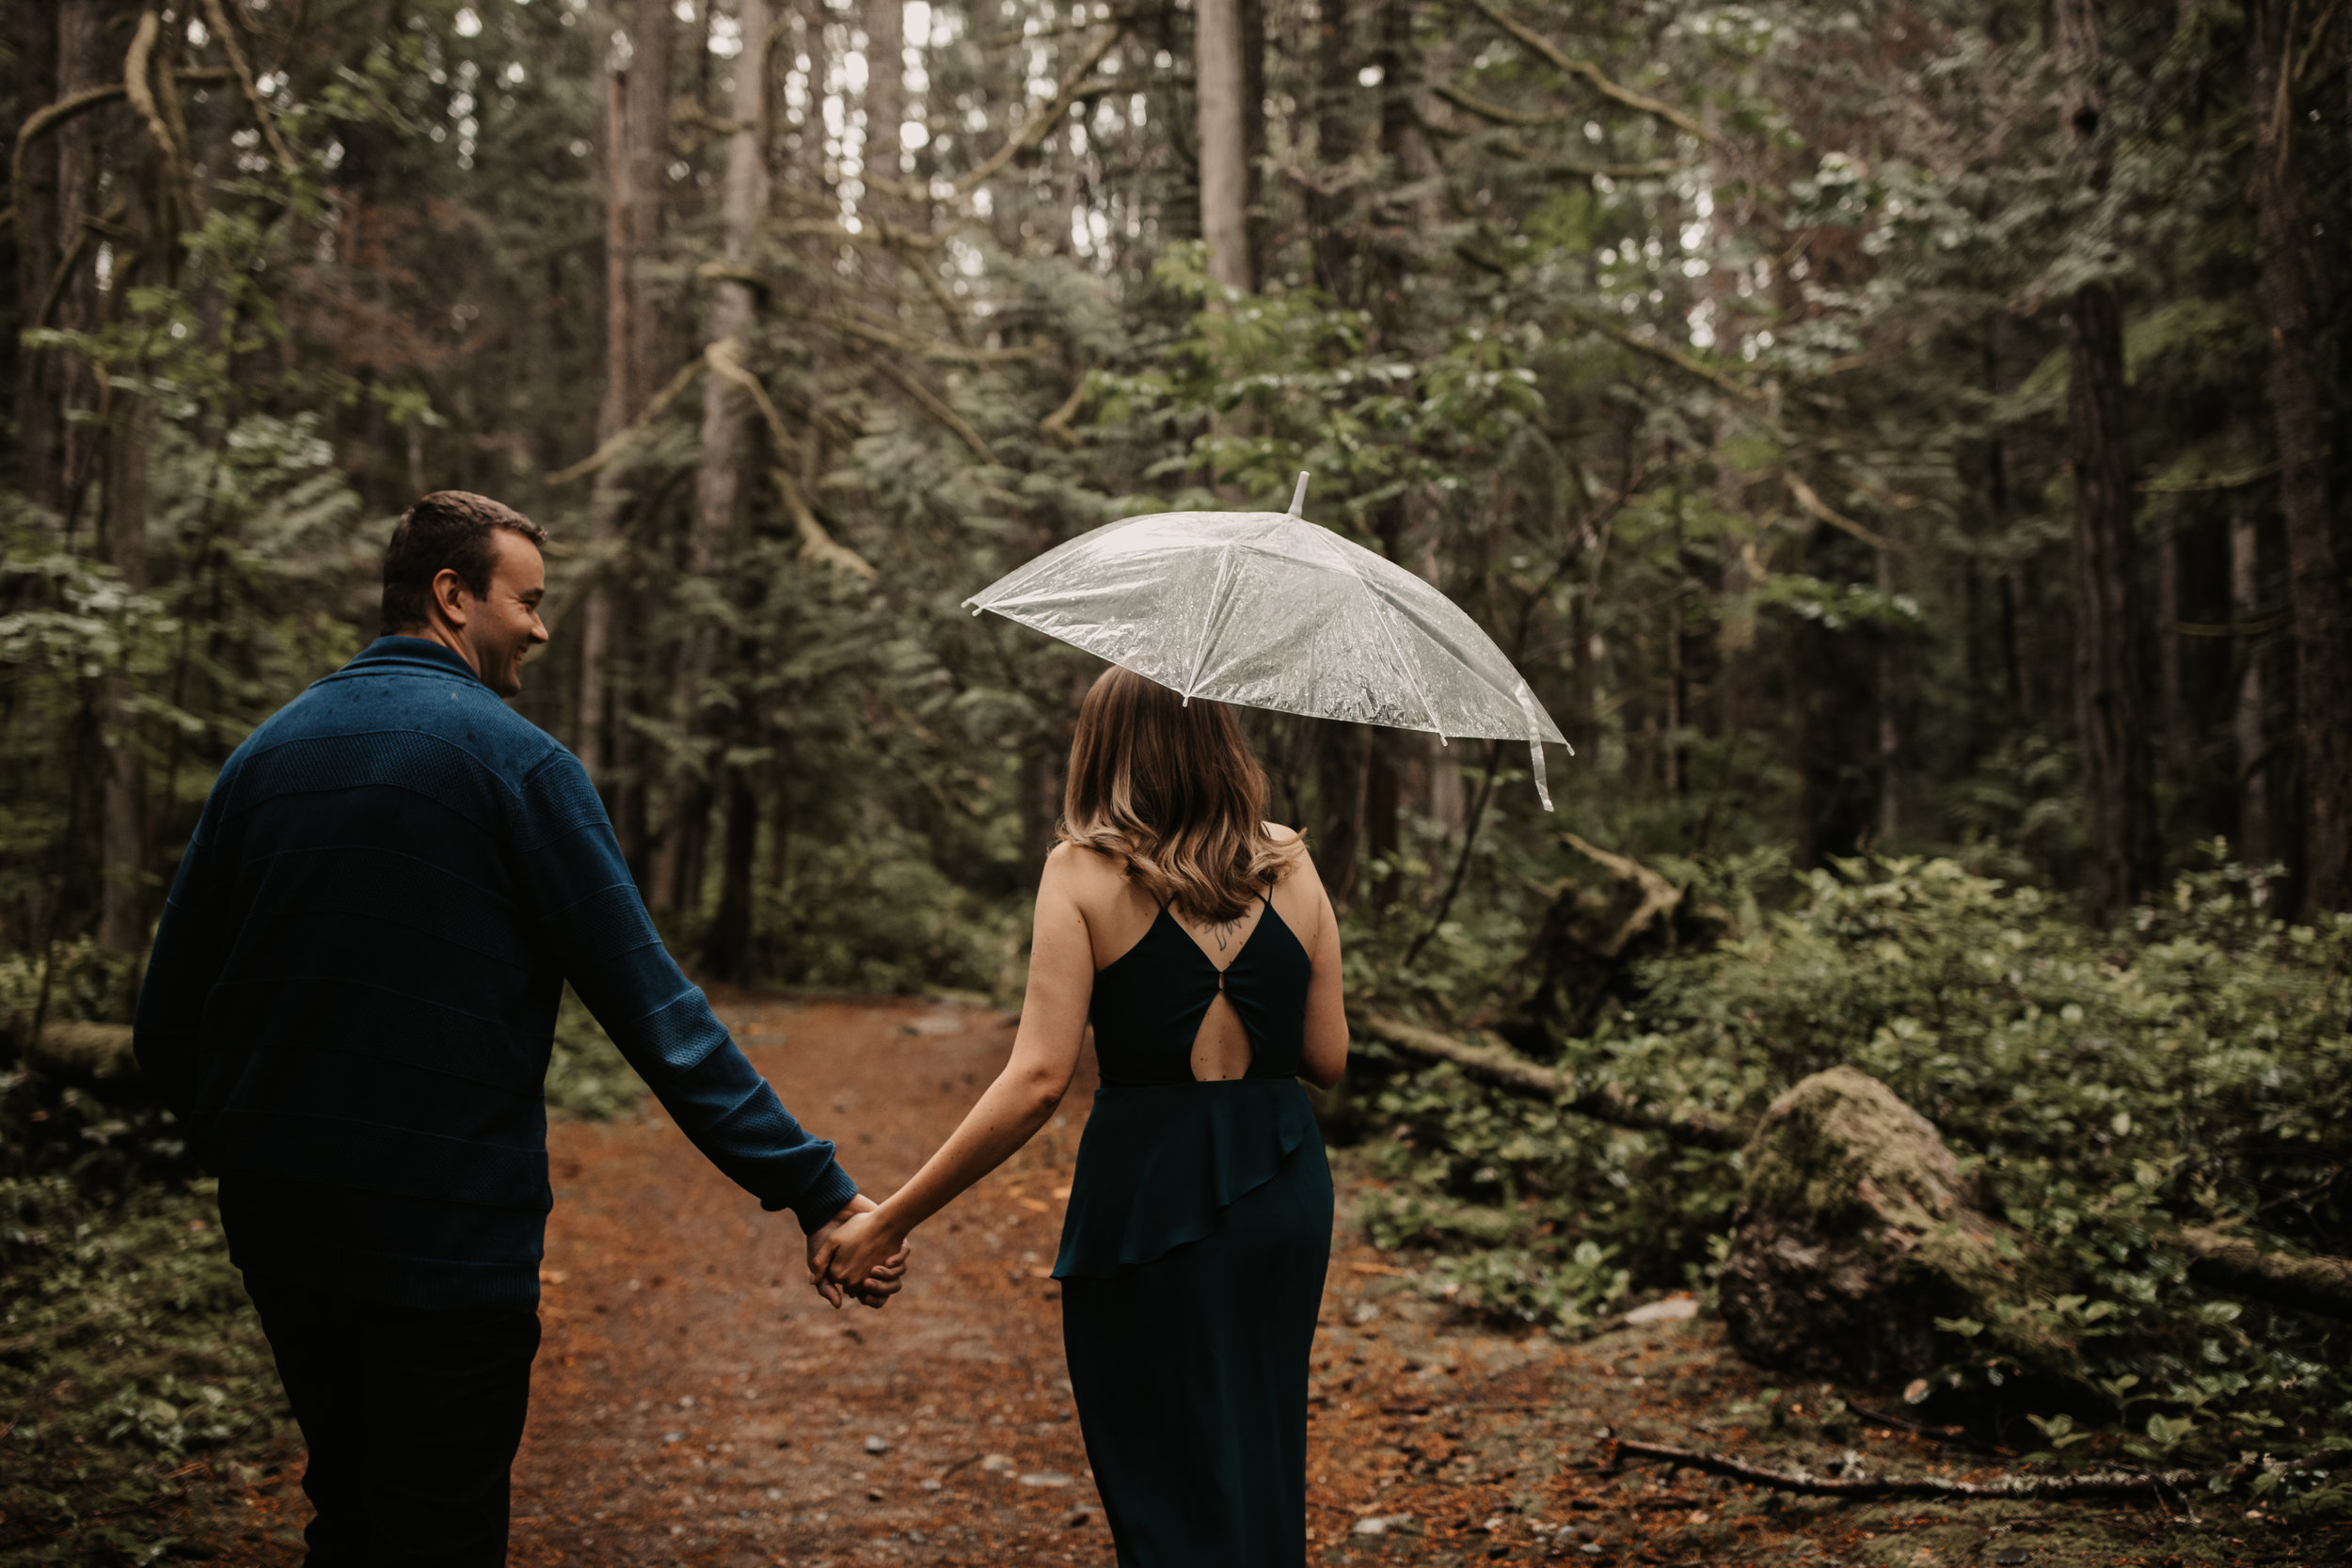 SUNSHINE COAST FOREST & BEACH ENGAGEMENT PHOTOS — Ashley & Antoine — JENNIFER PICARD PHOTOGRAPHY189.JPG